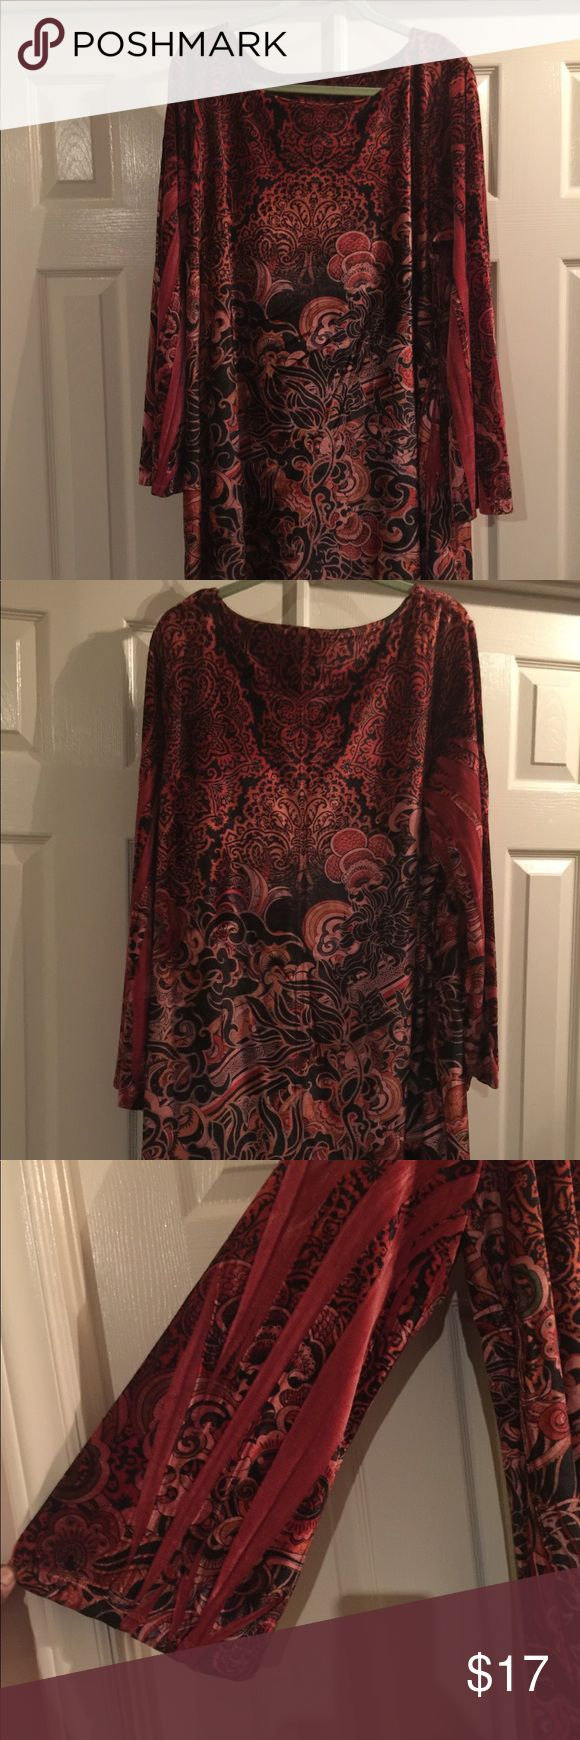 Velour dress Comfortable, red paisley dress Cato Dresses Long Sleeve